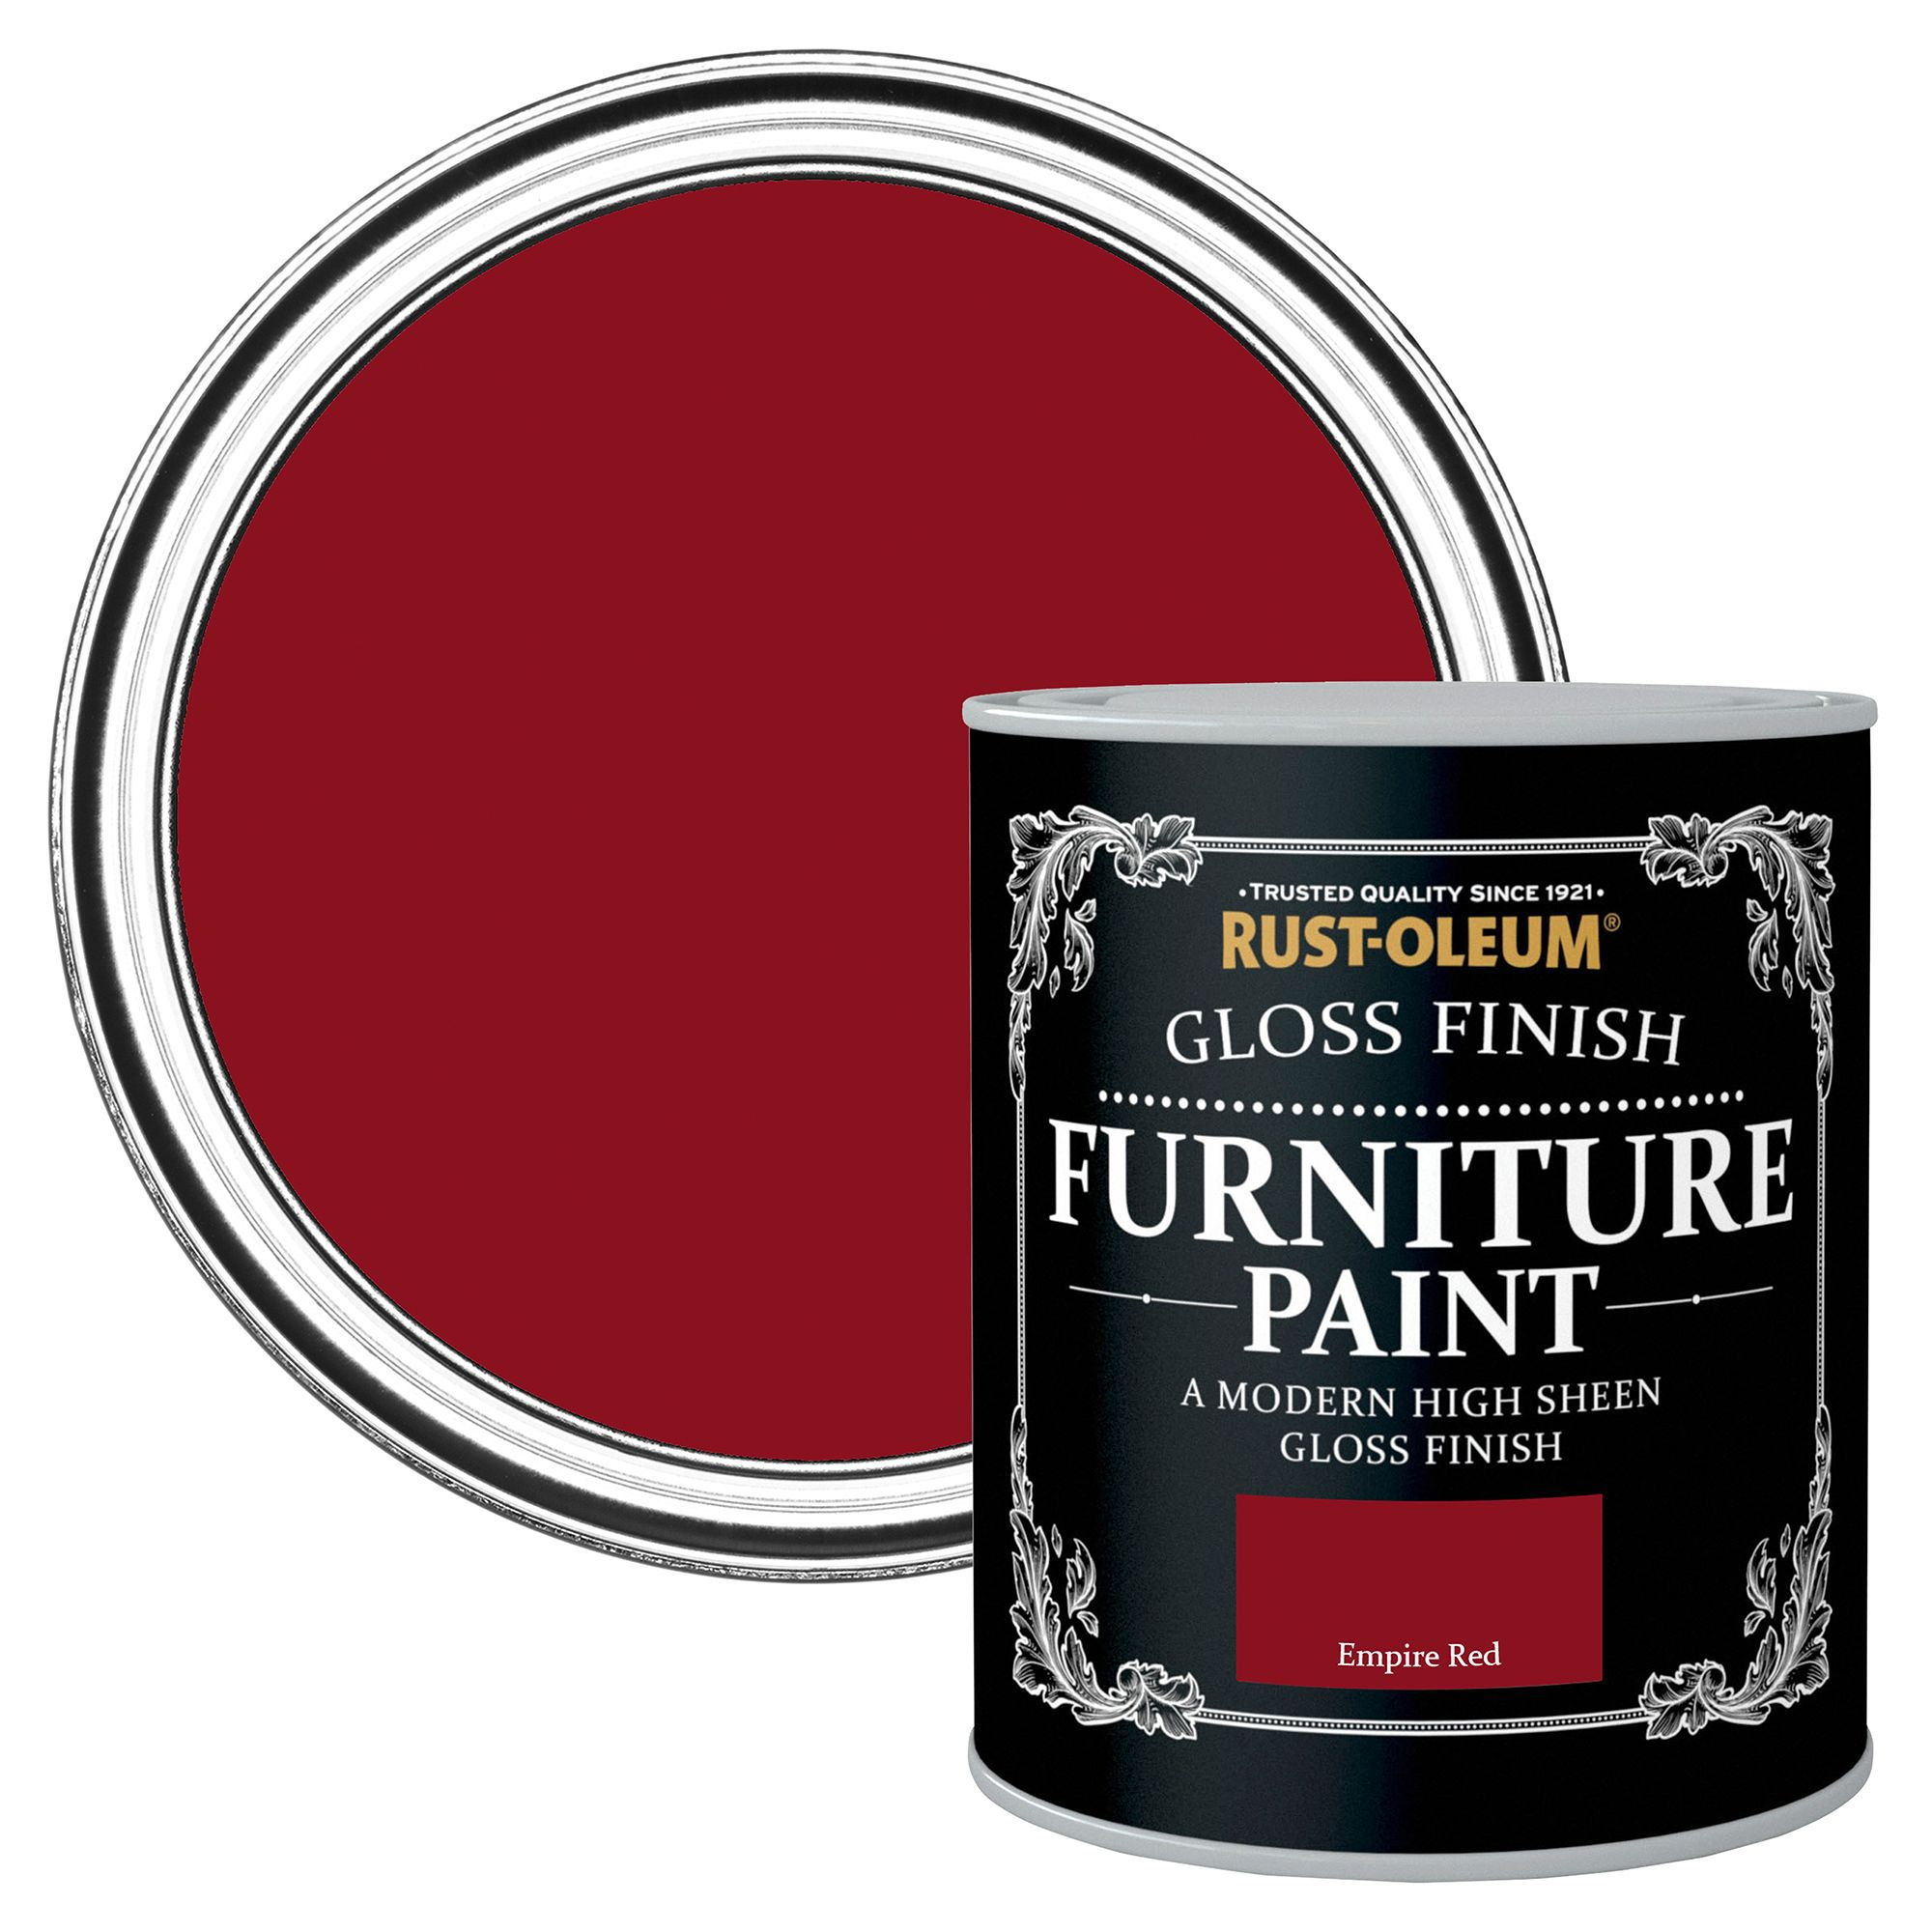 Rust-oleum Empire Red Gloss Furniture Paint 125 Ml